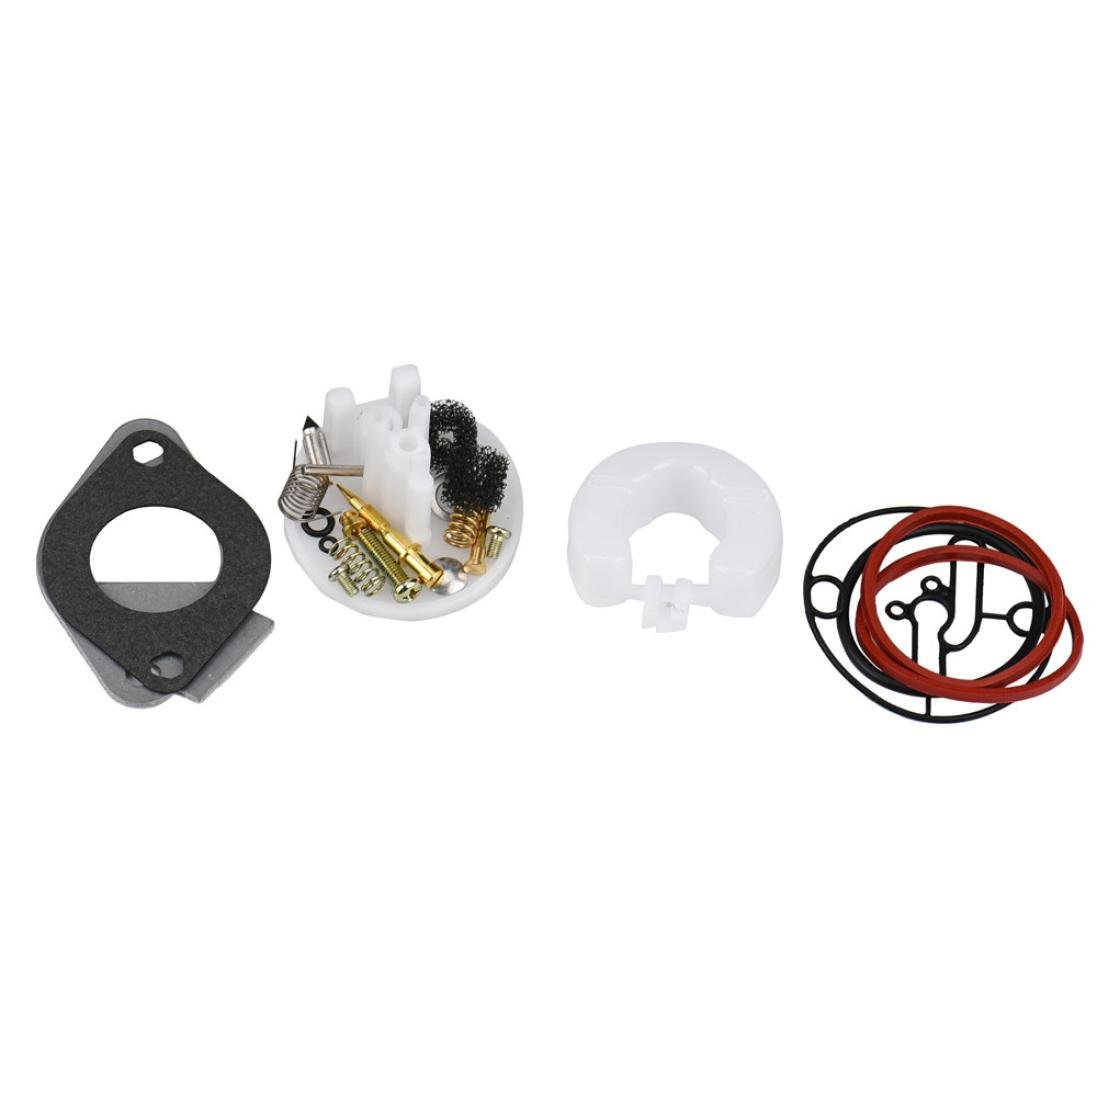 Efaster Unique For Briggs & Stratton Carburetor Rebuild Kit Master Overhaul Nikki Carbs 796184